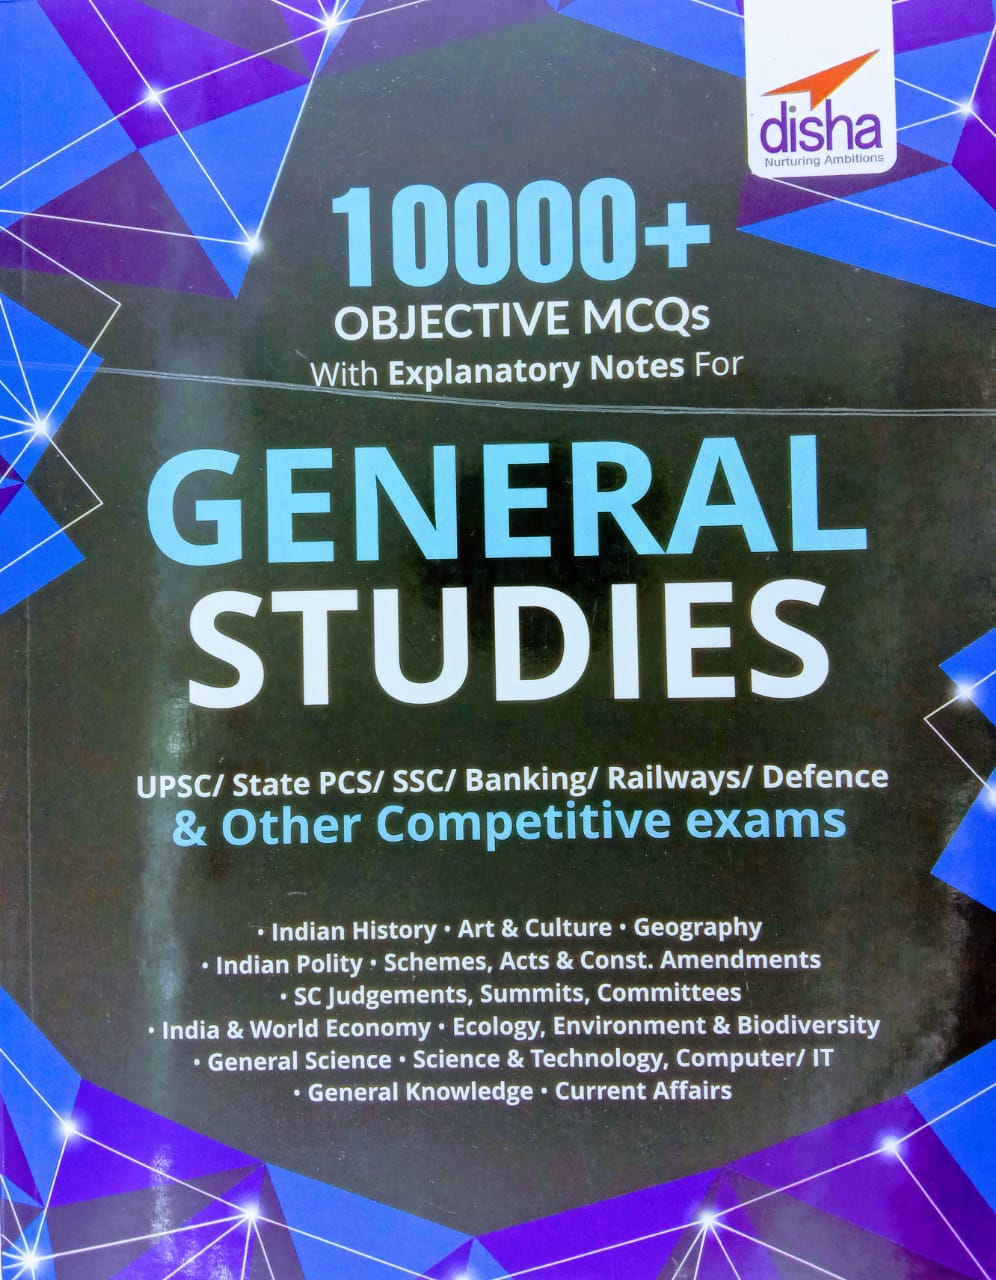 10000+ OBJECTIVE MCQ With Explanatory Notes For GENERAL STUDIES